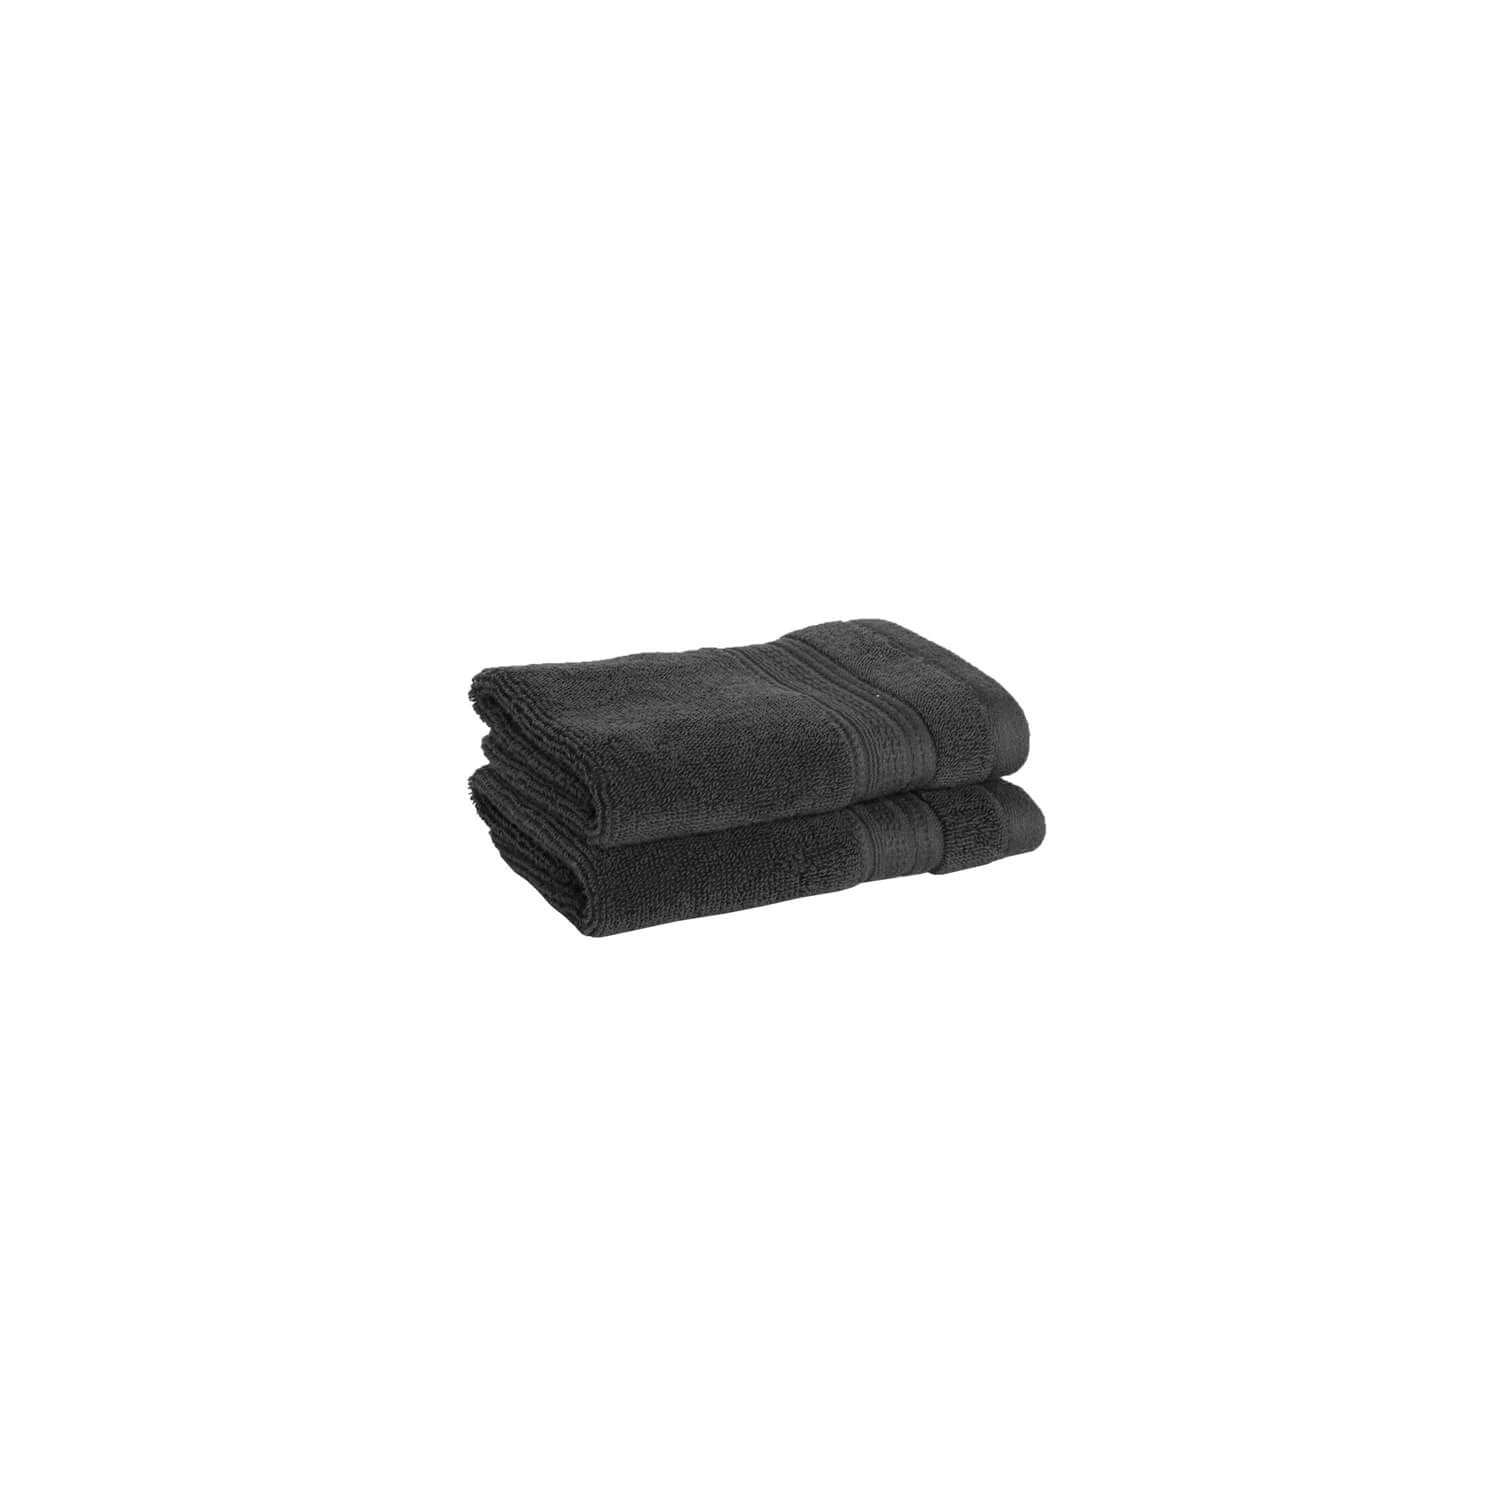 Luxe Washcloth - Charcoal